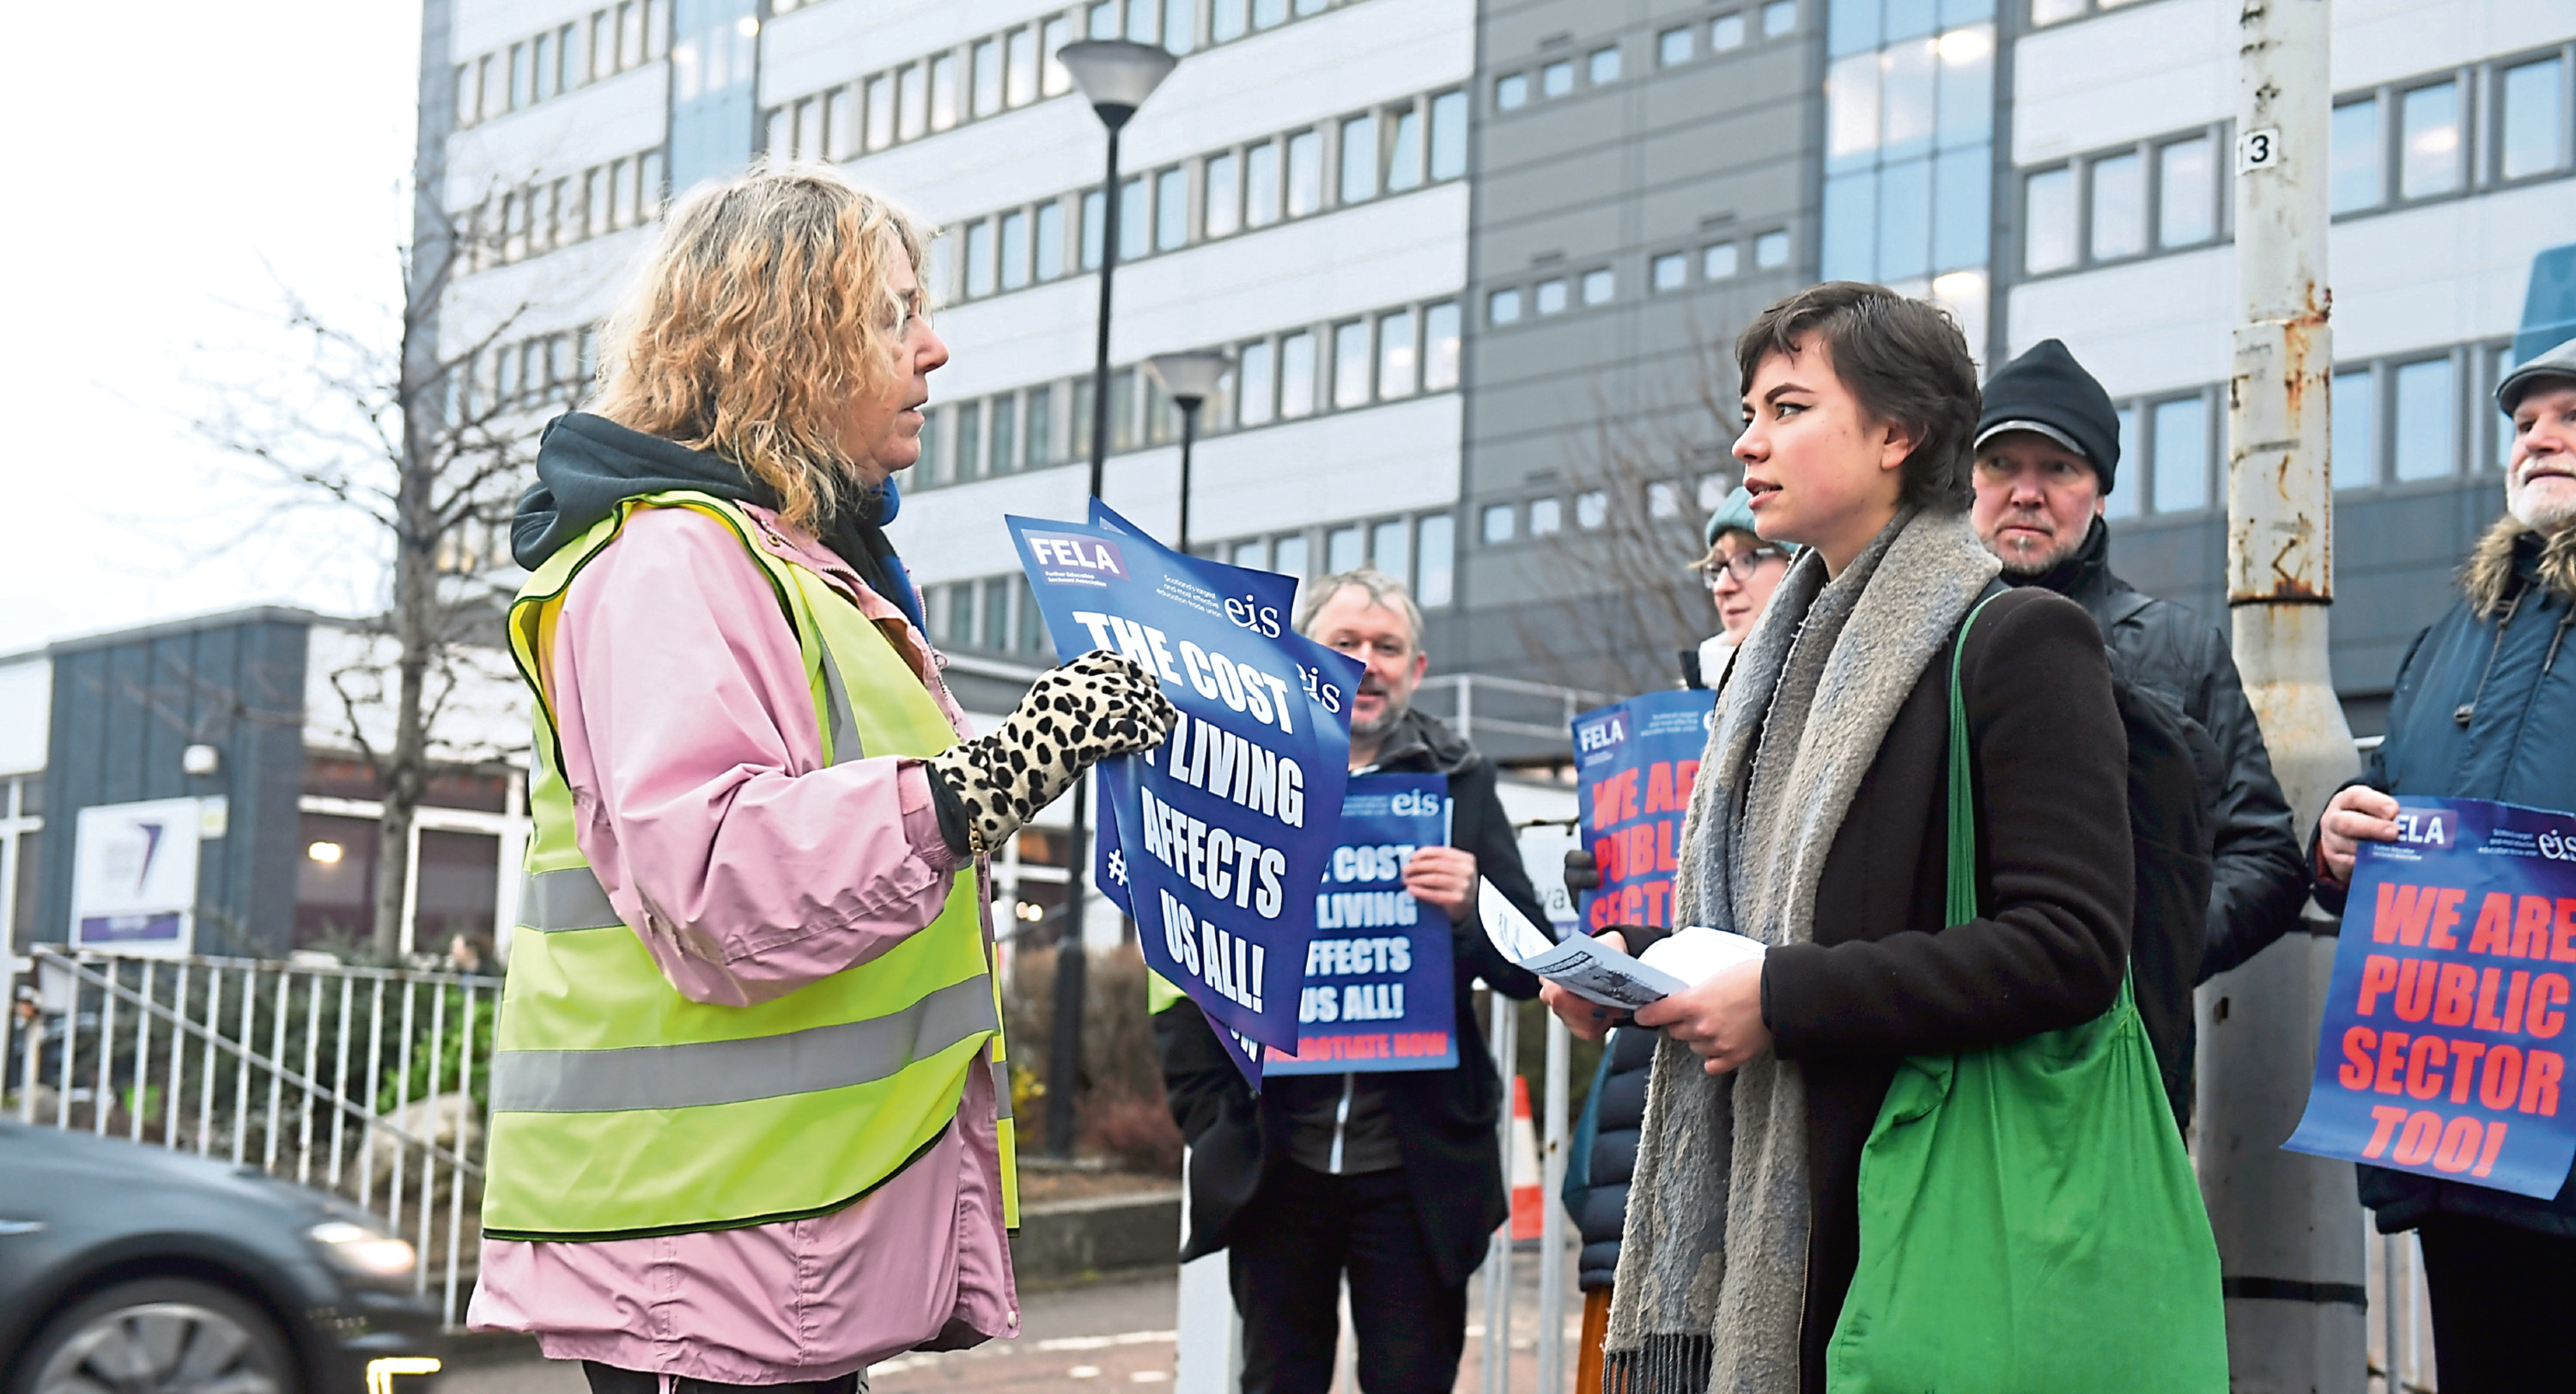 A group of lecturers were picketing outside Aberdeen, Fraserburgh and Moray branches of NESCol today